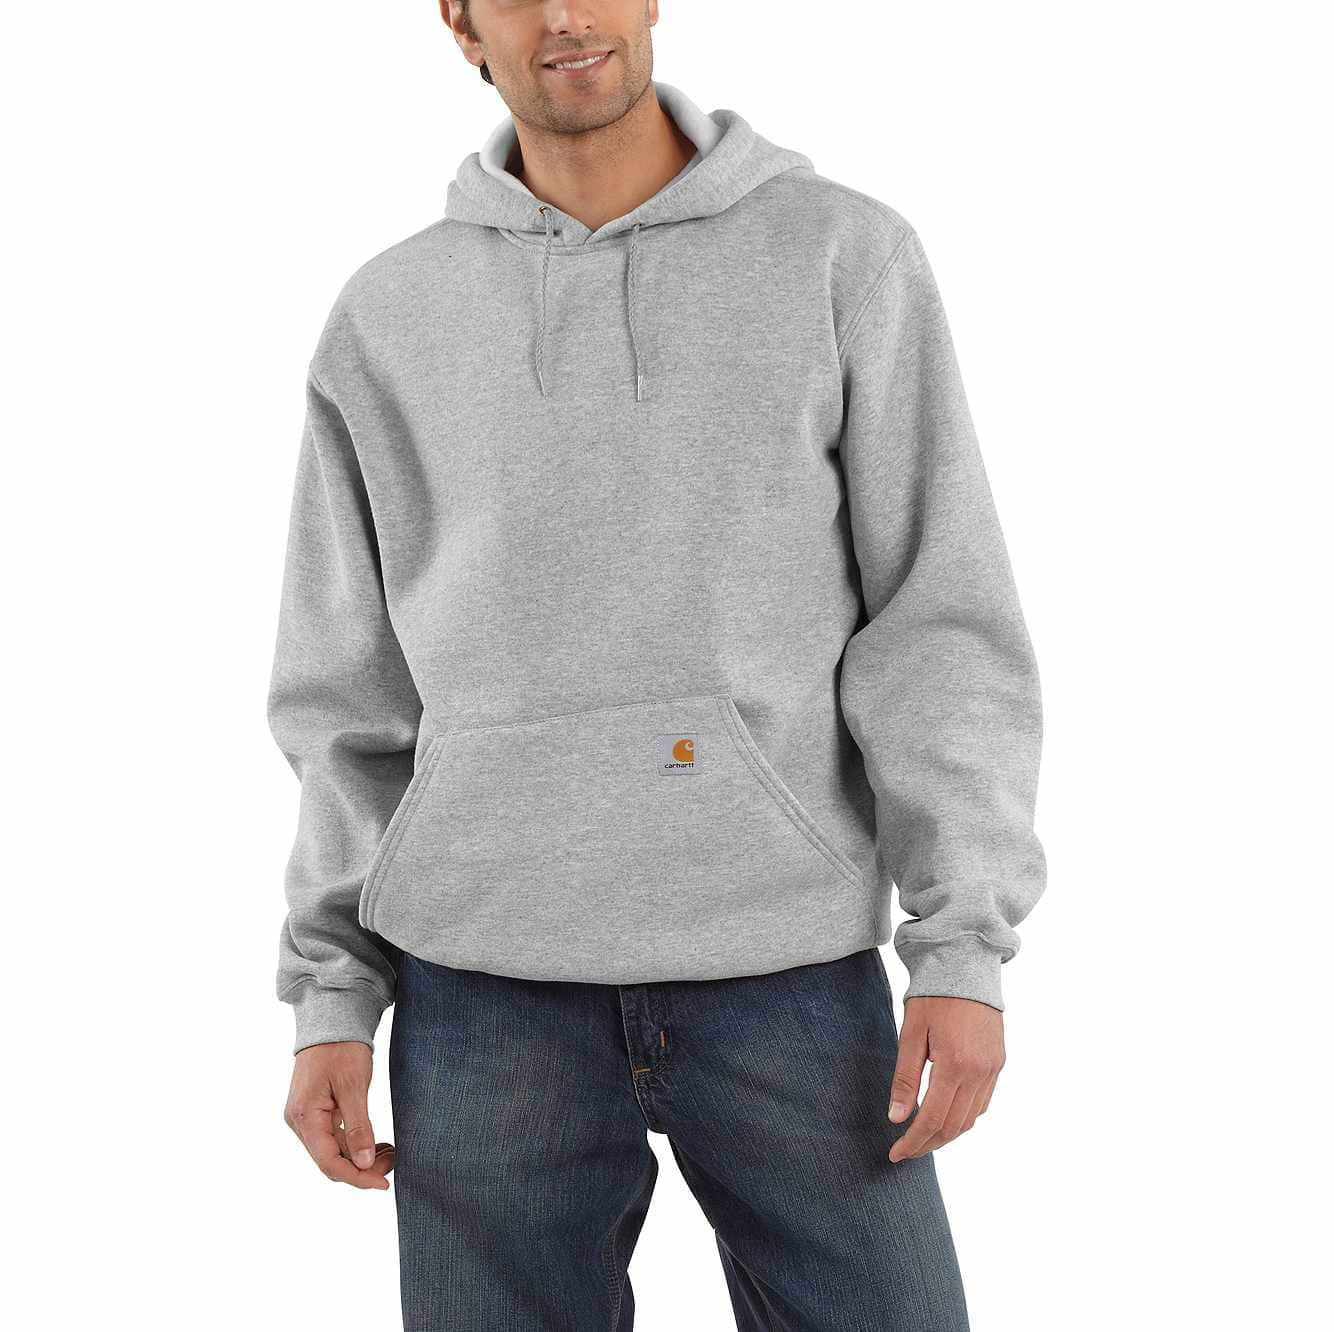 Picture of Hooded Pullover Midweight Sweatshirt in Heather Gray